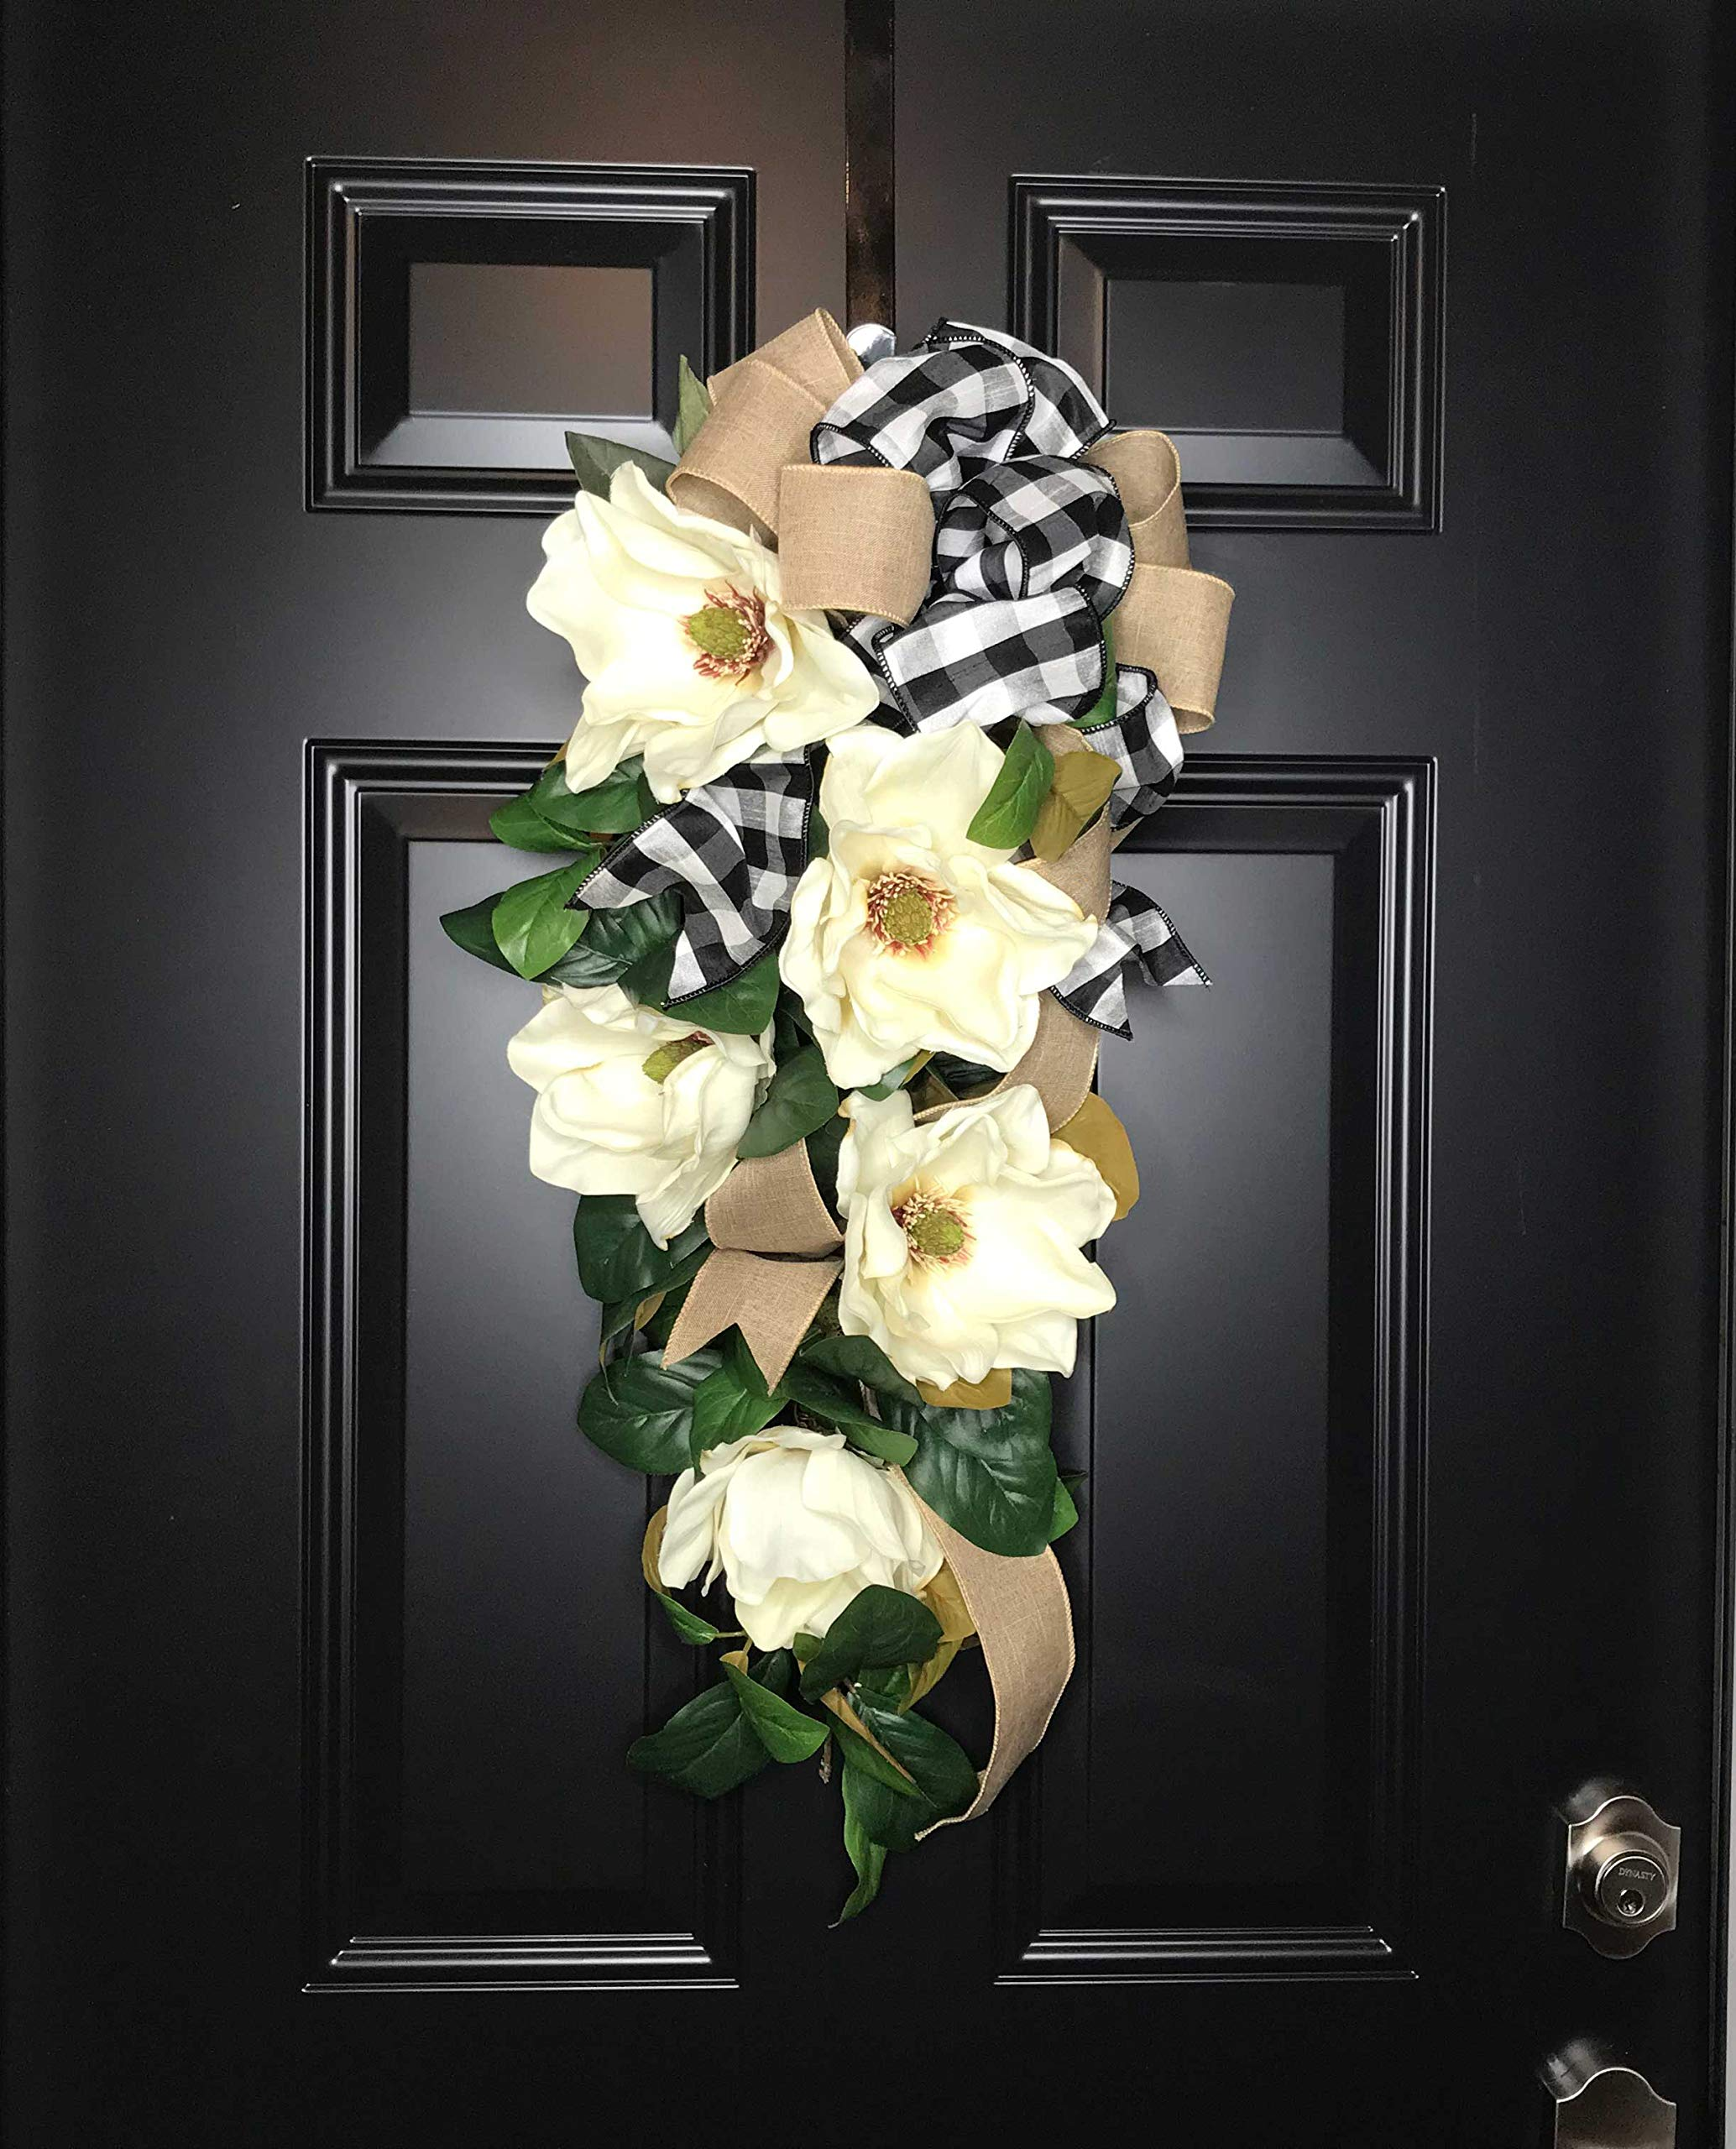 Large Southern Magnolia Teardrop Floral Swag Wreath w/Buffalo Plaid/Check Bow for Front Door Porch Indoor Wall Farmhouse Decor Spring Springtime Summer Summertime Year Round, Handmade, 30''L x 18'' W by Wreath and Vine, LLC (Image #9)